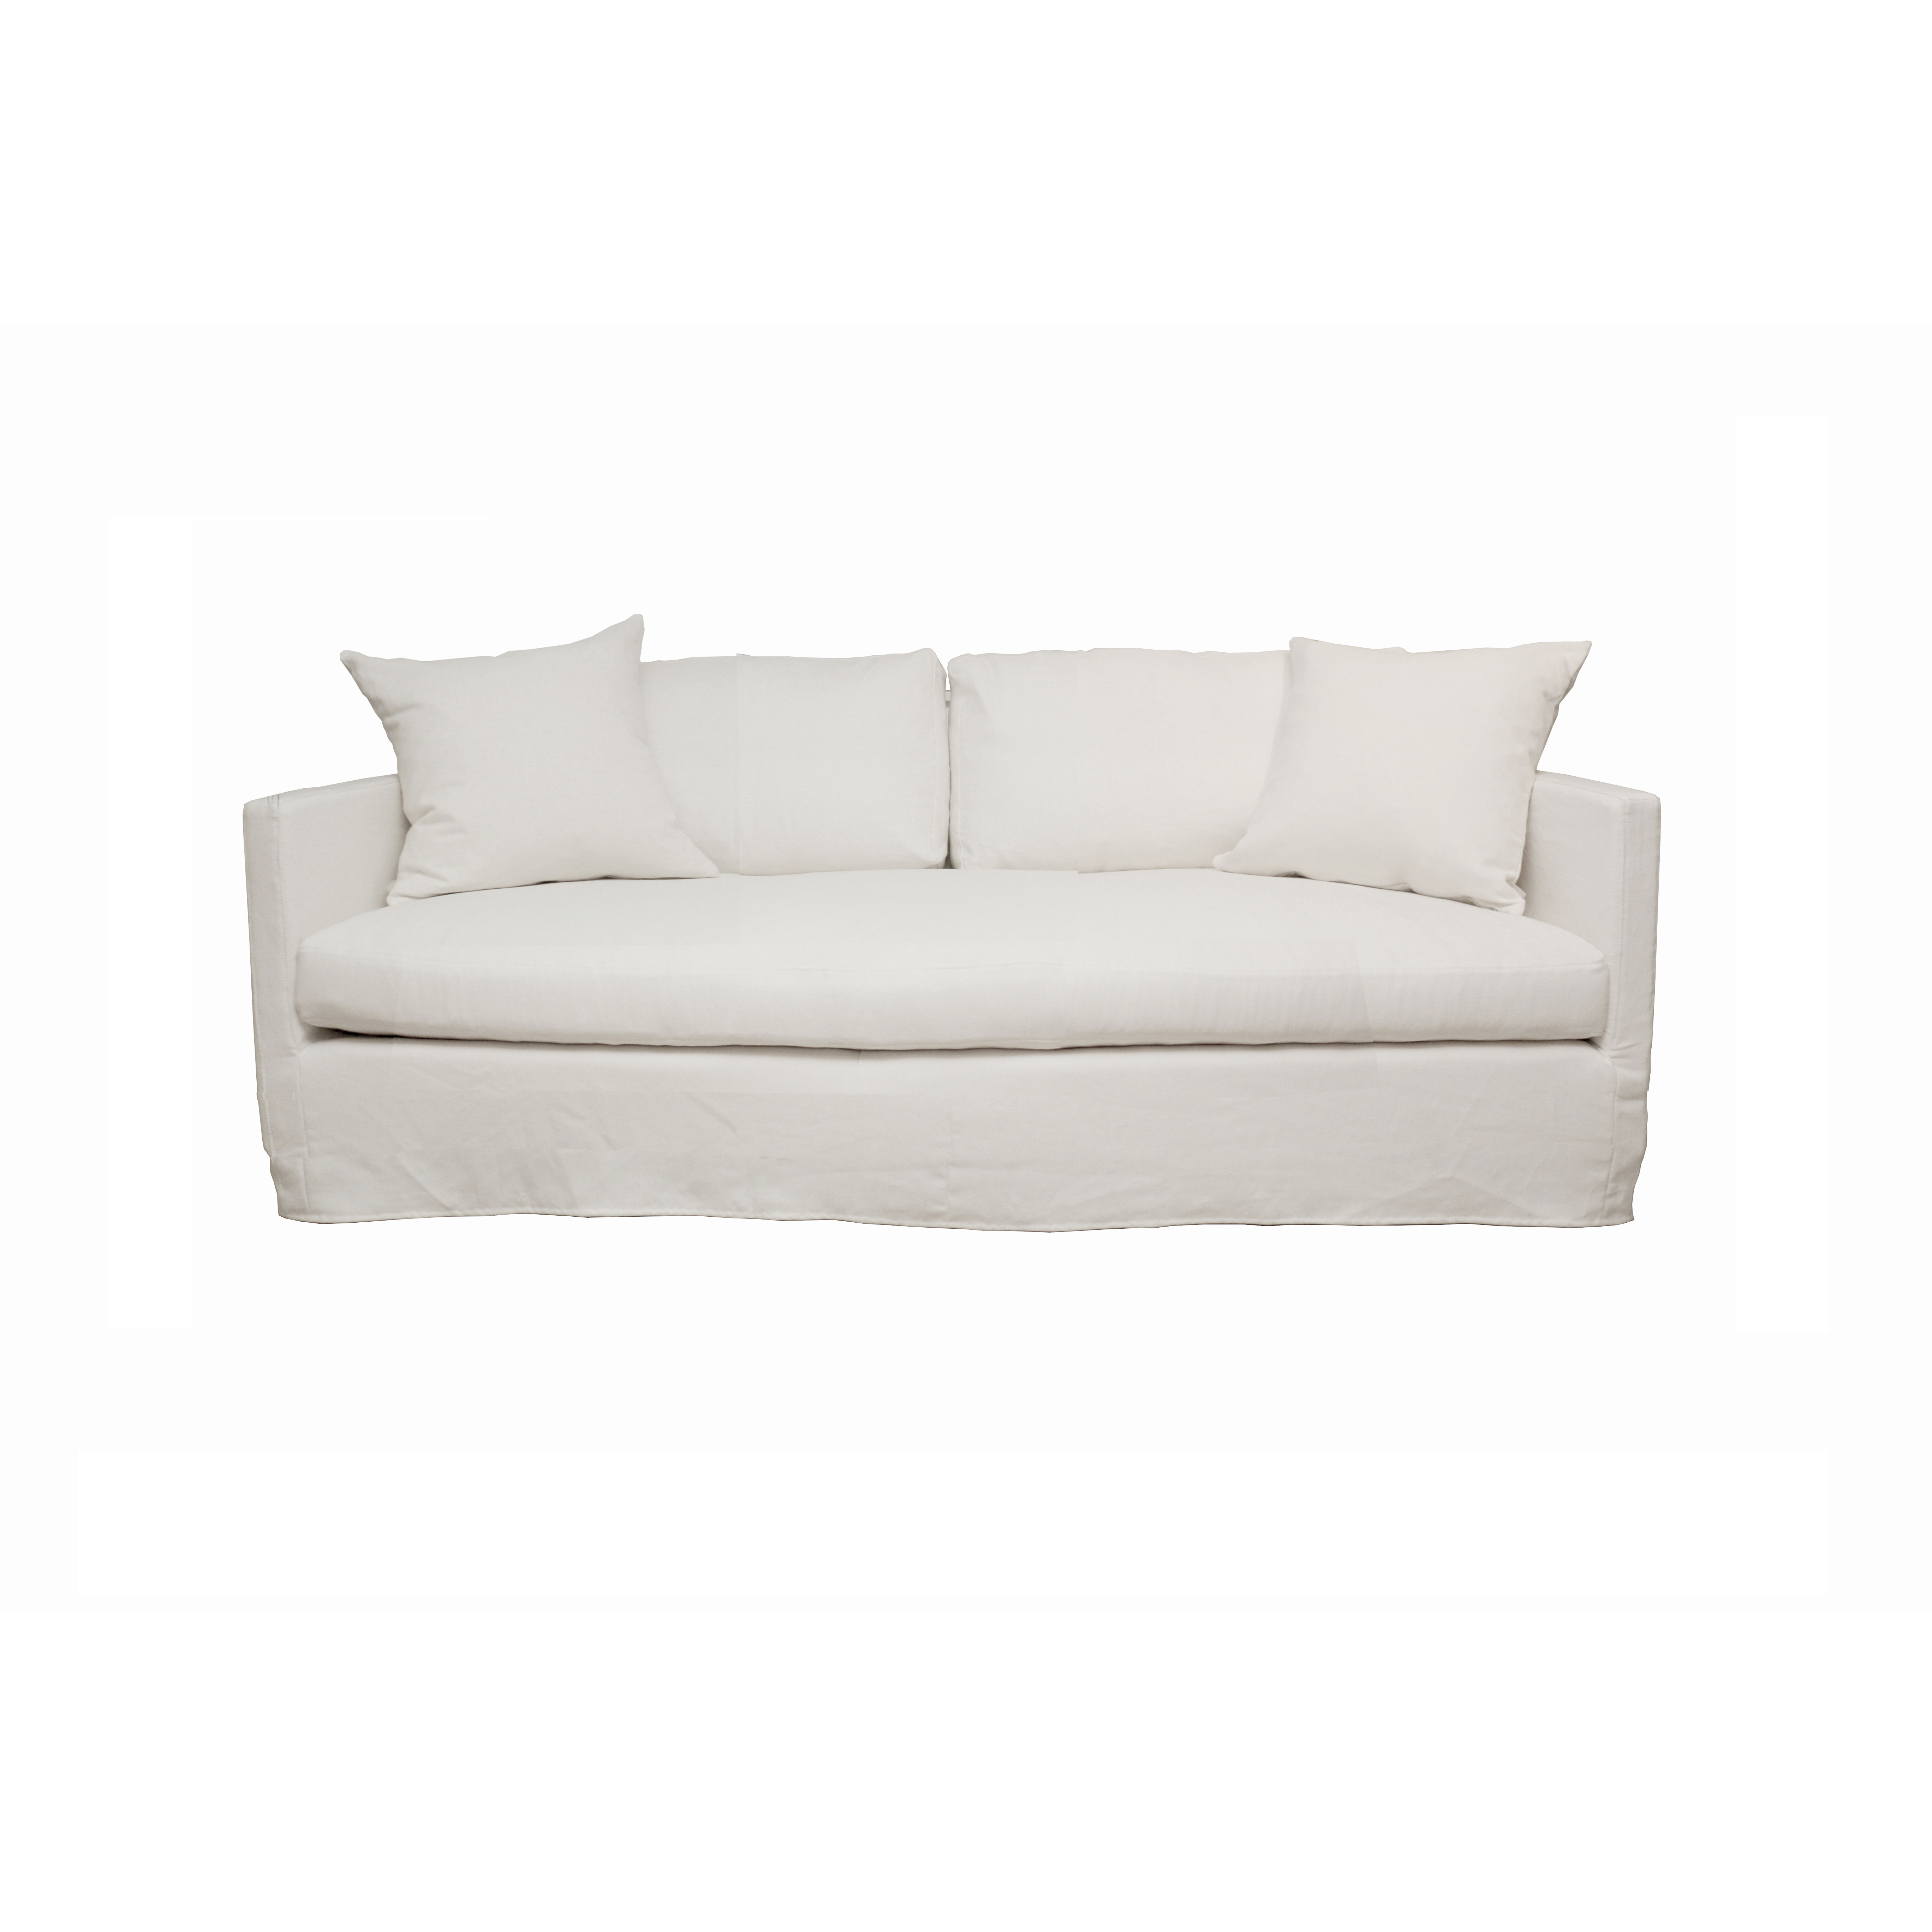 Somerville casual soffa 3-sits - englesson.se